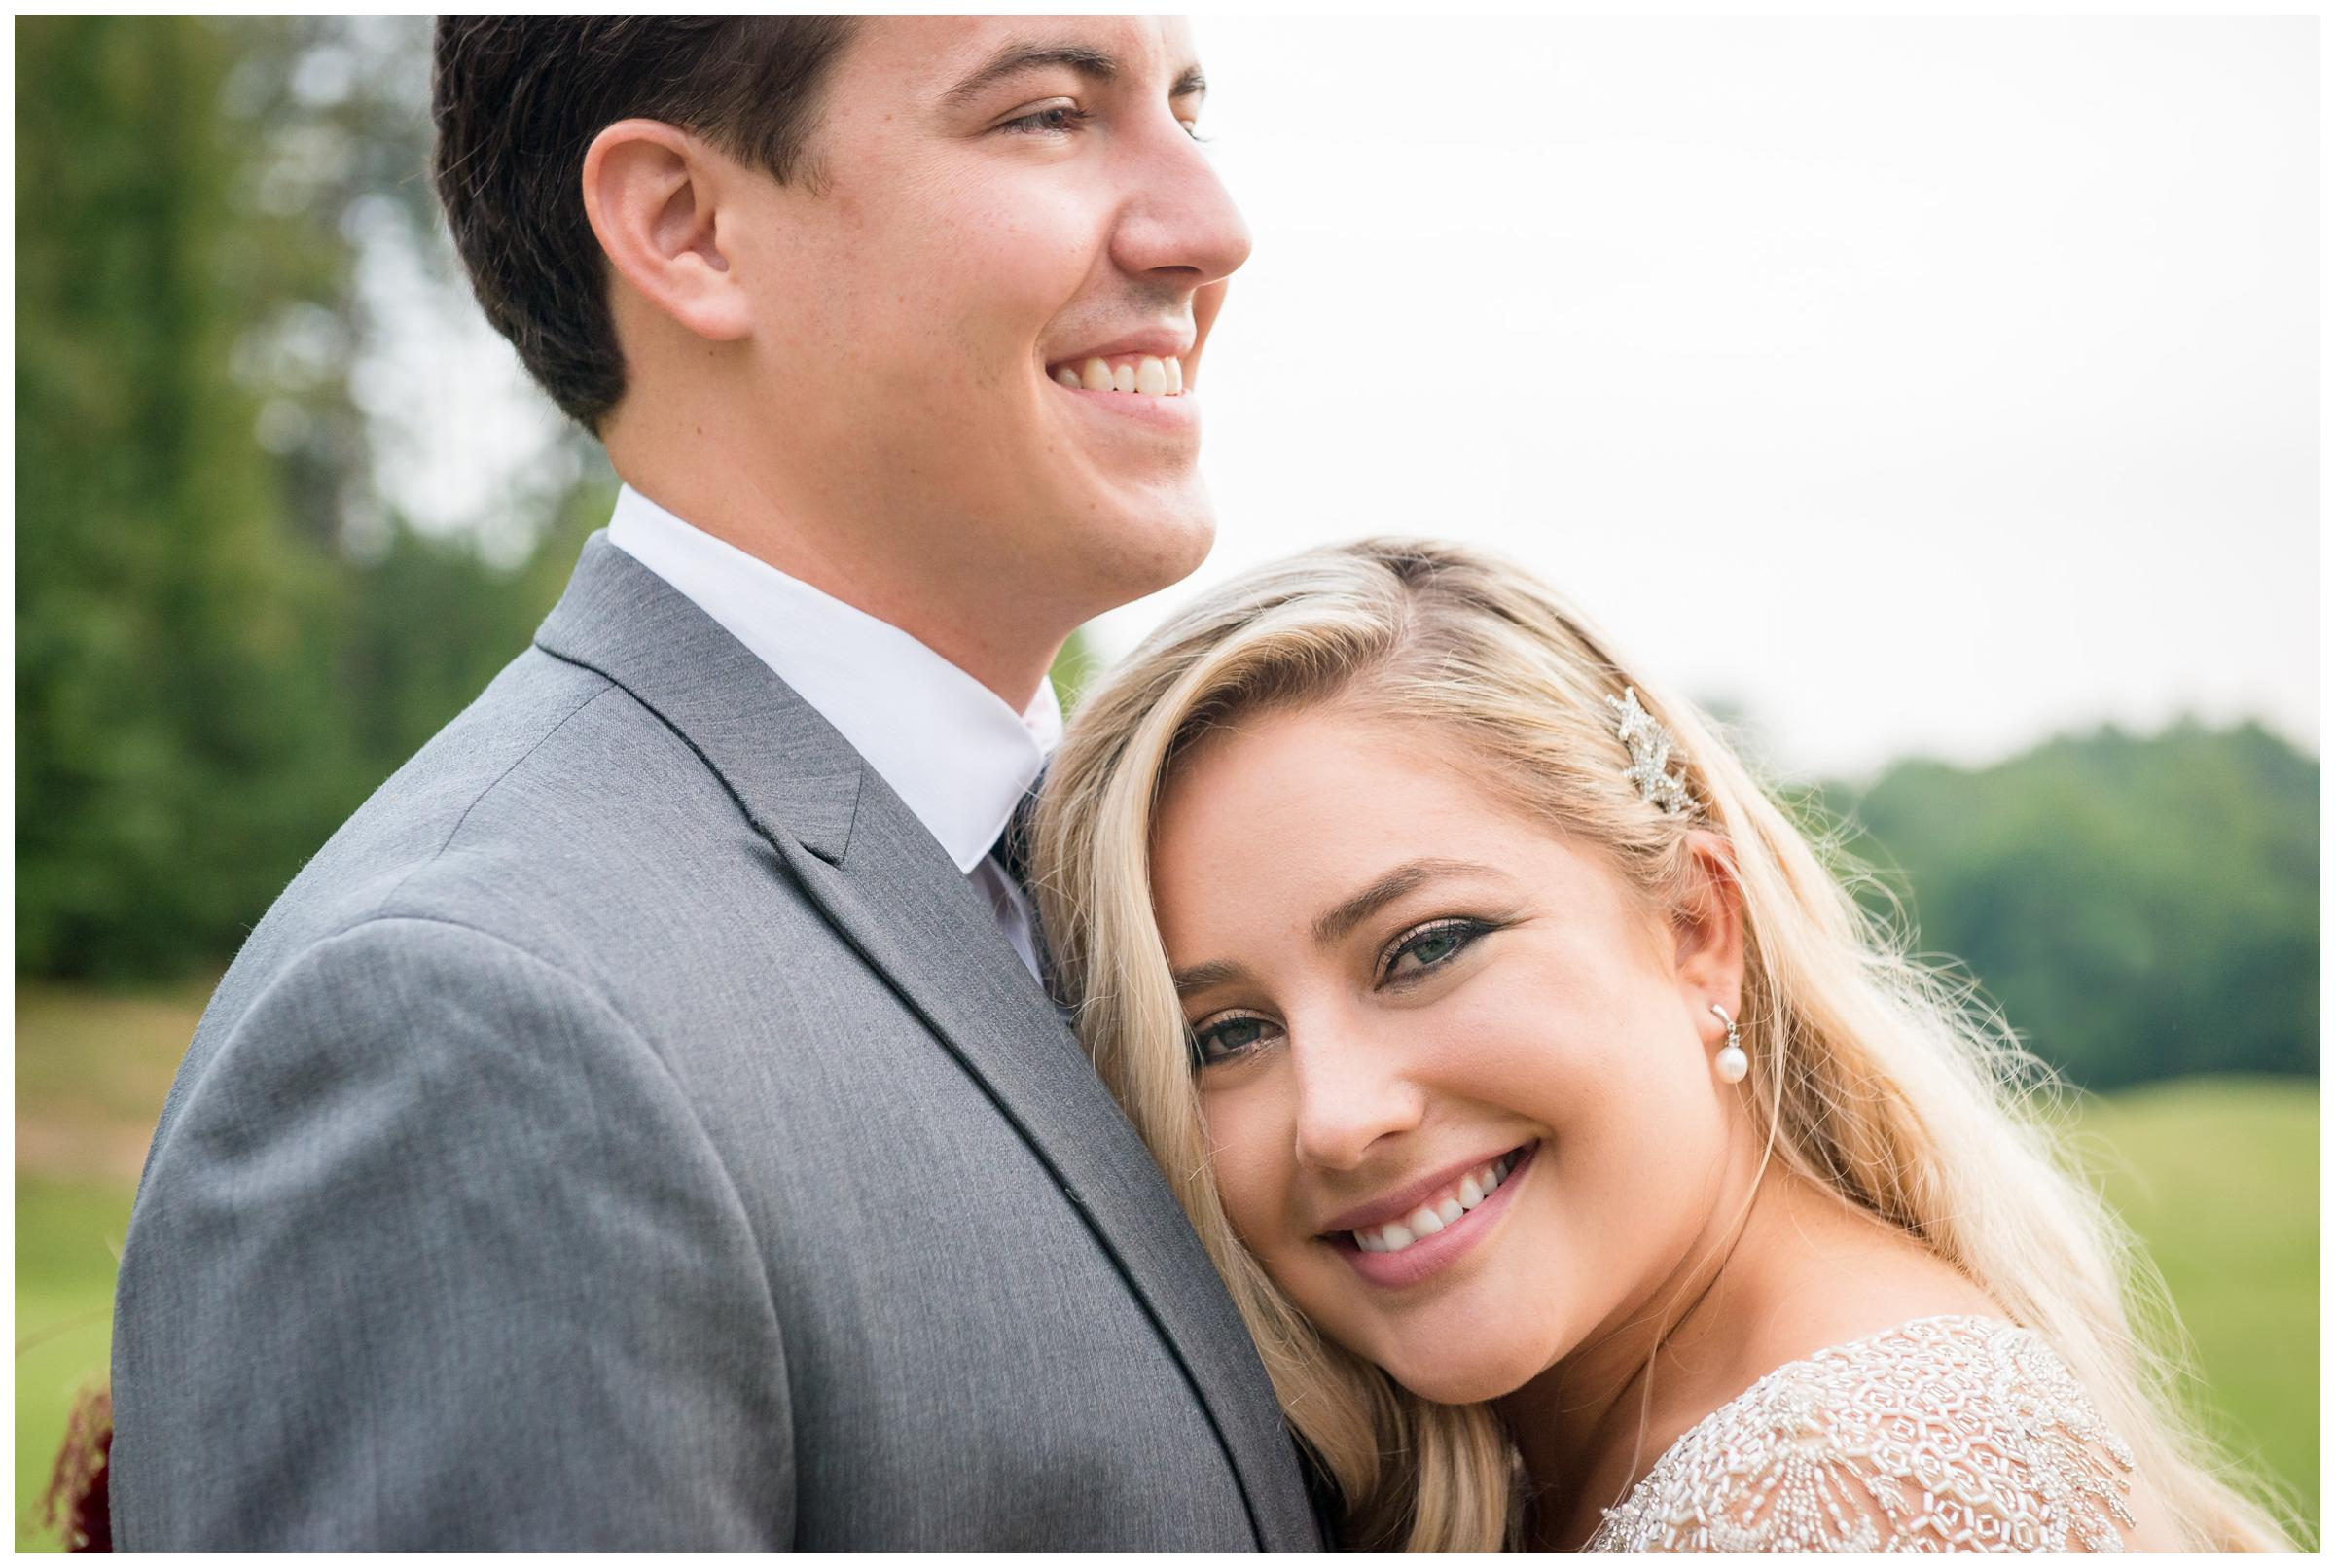 closeup of bride and groom on wedding day